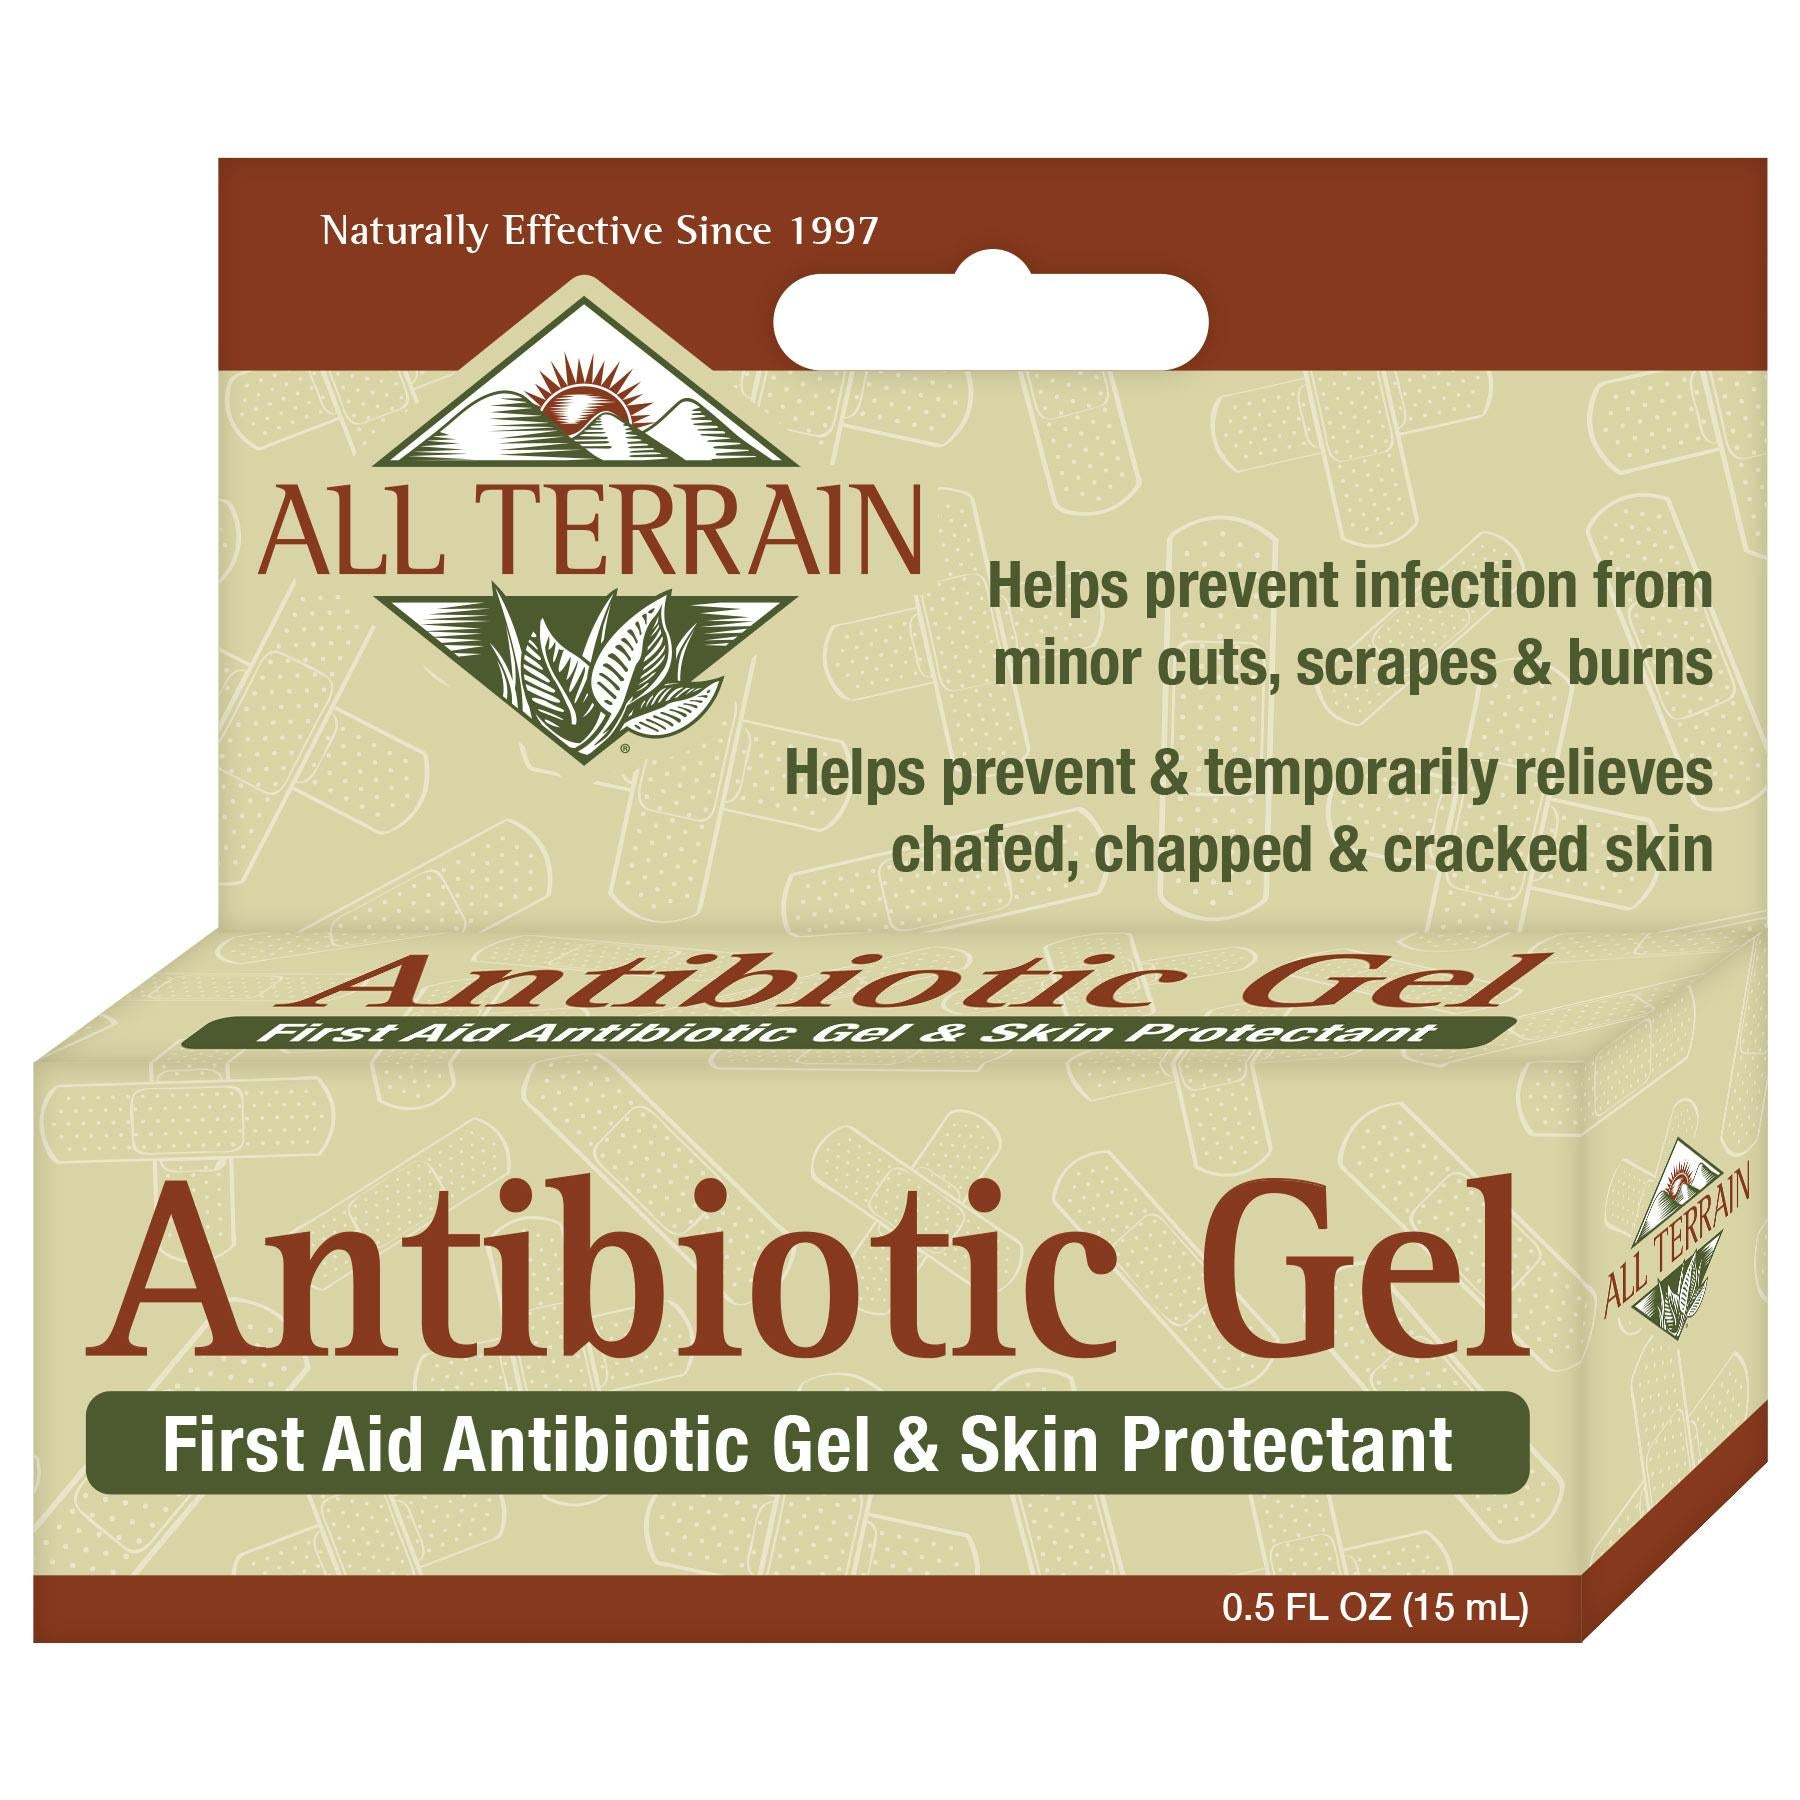 All Terrain Antibiotic Gel